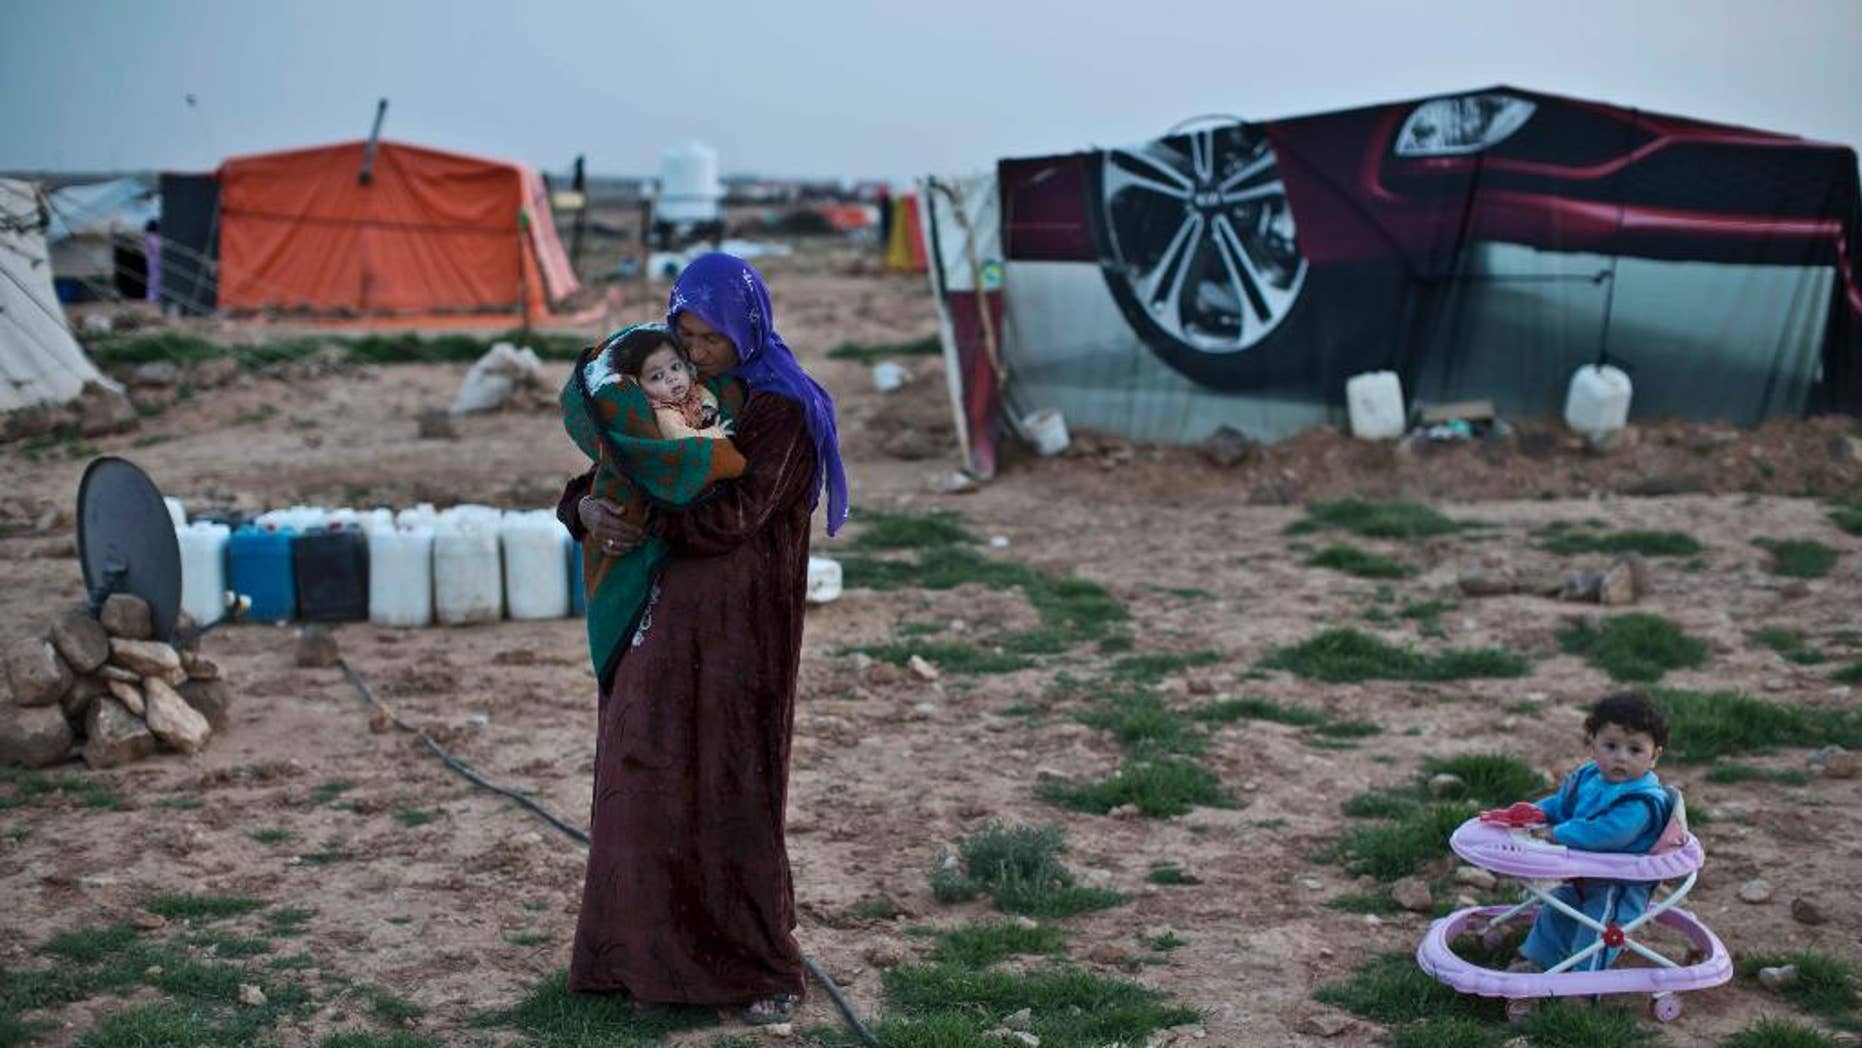 FILE - In this Sunday, March 8, 2015 file photo, Syrian refugee Rifaa Ahmad, 50, cuddles her granddaughter at an informal tented settlement near the Syrian border, on the outskirts of Mafraq, Jordan. Kuwait opened an international donors' conference for Syria on Tuesday, March 31, 2015 with a pledge of $500 million in humanitarian aid as the United Nations issued its largest yet appeal for $8.4 billion in commitments this year for the war-ravaged country.(AP Photo/Muhammed Muheisen, File)